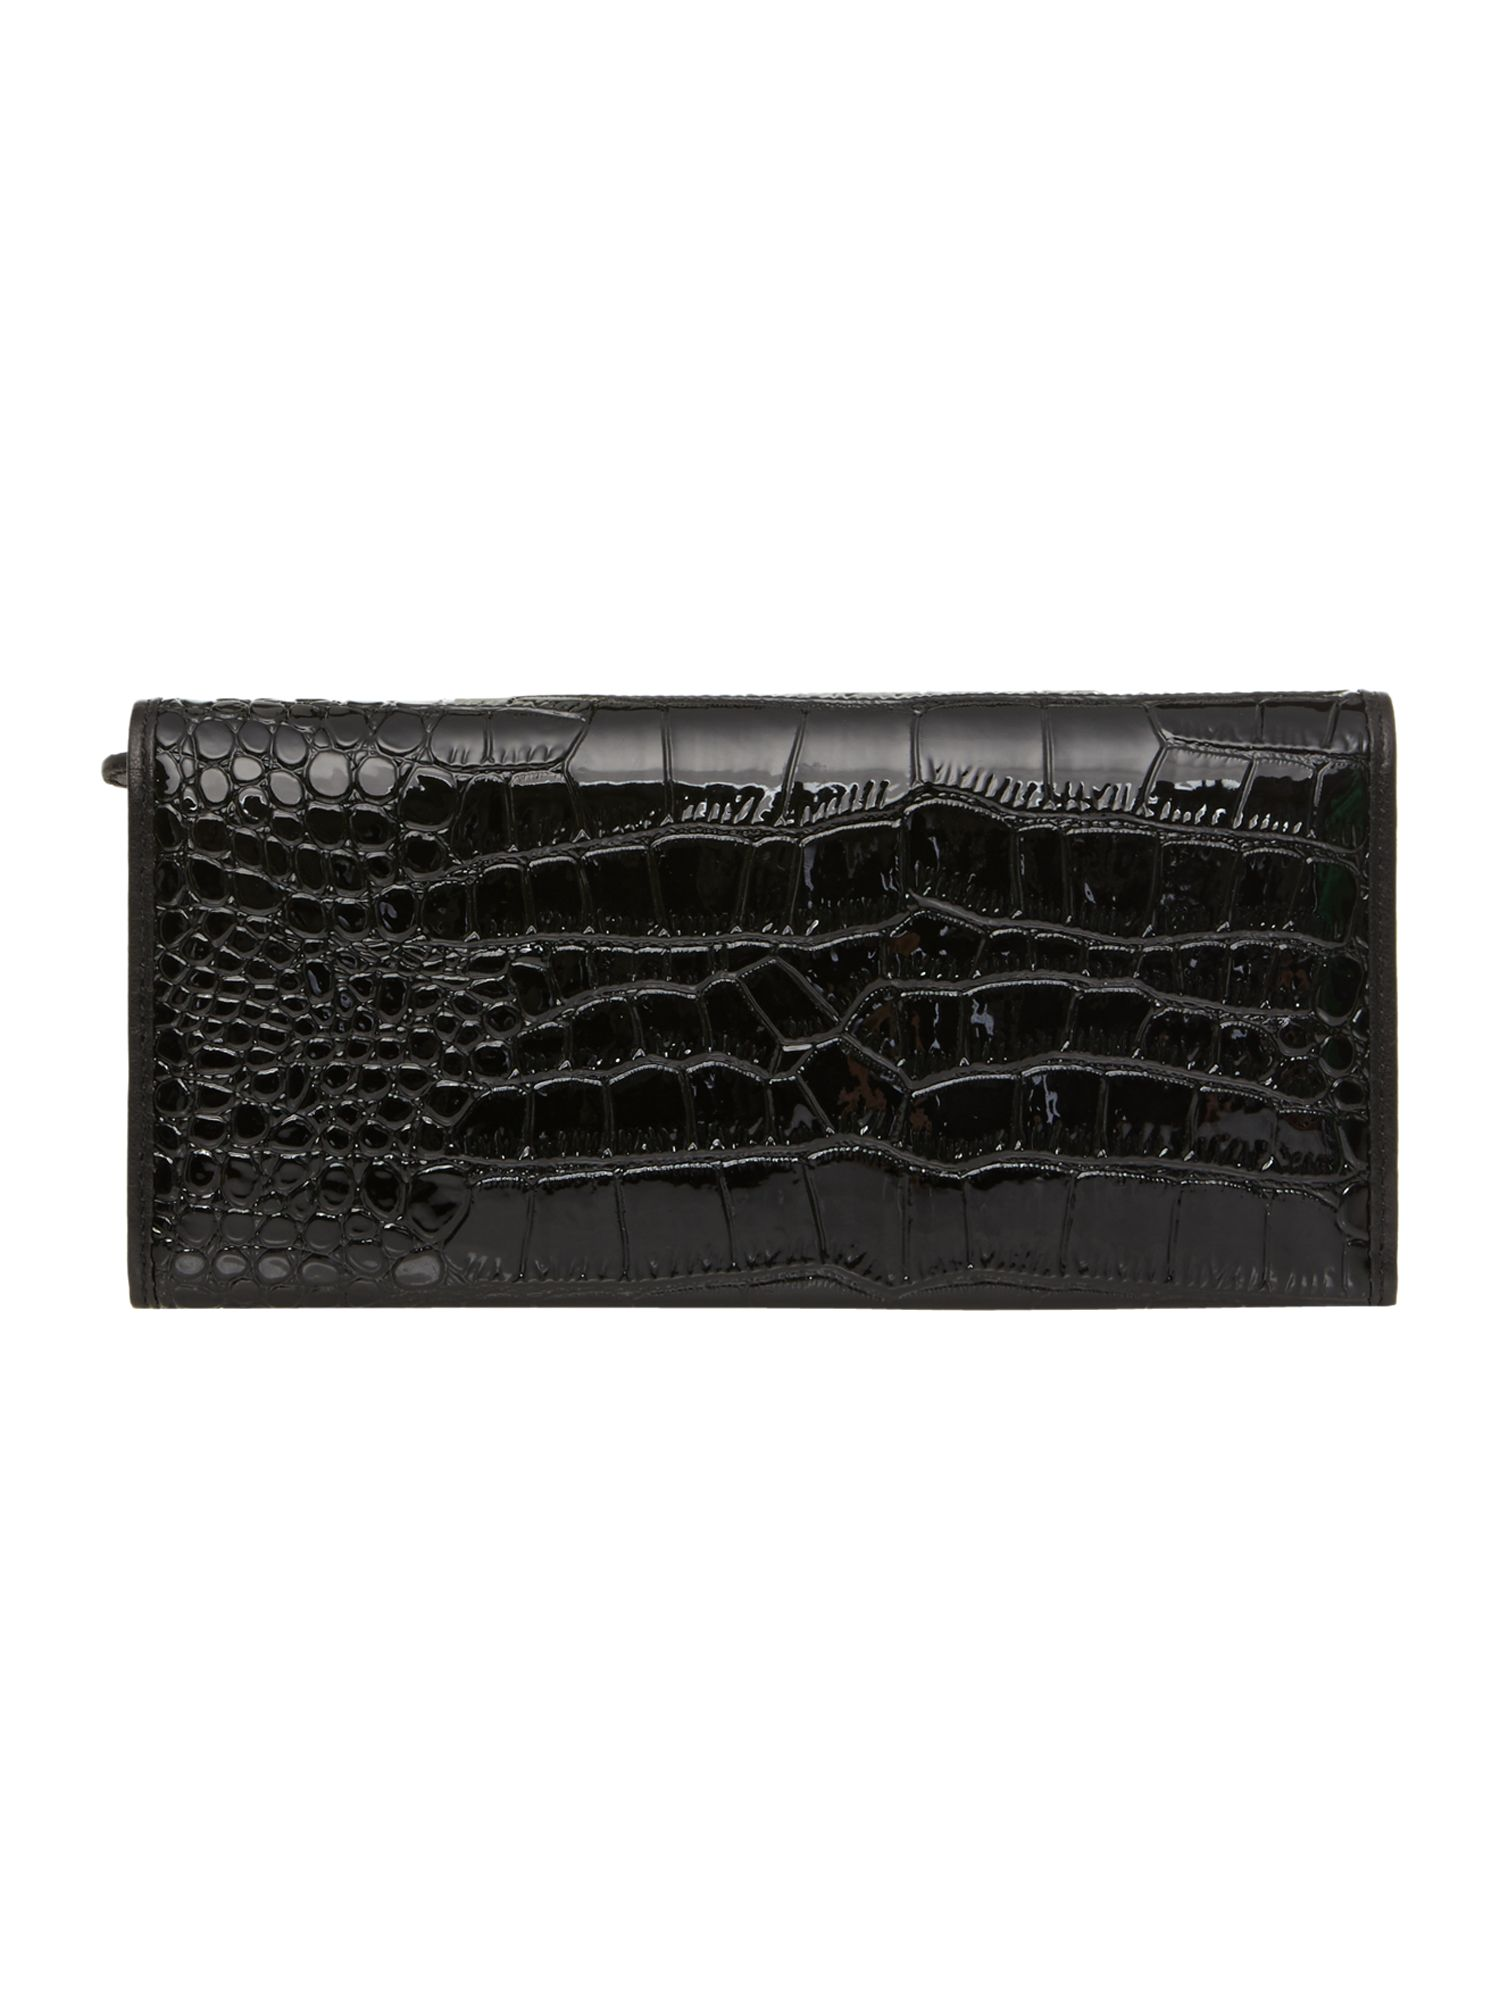 Chancery black croc flapover purse